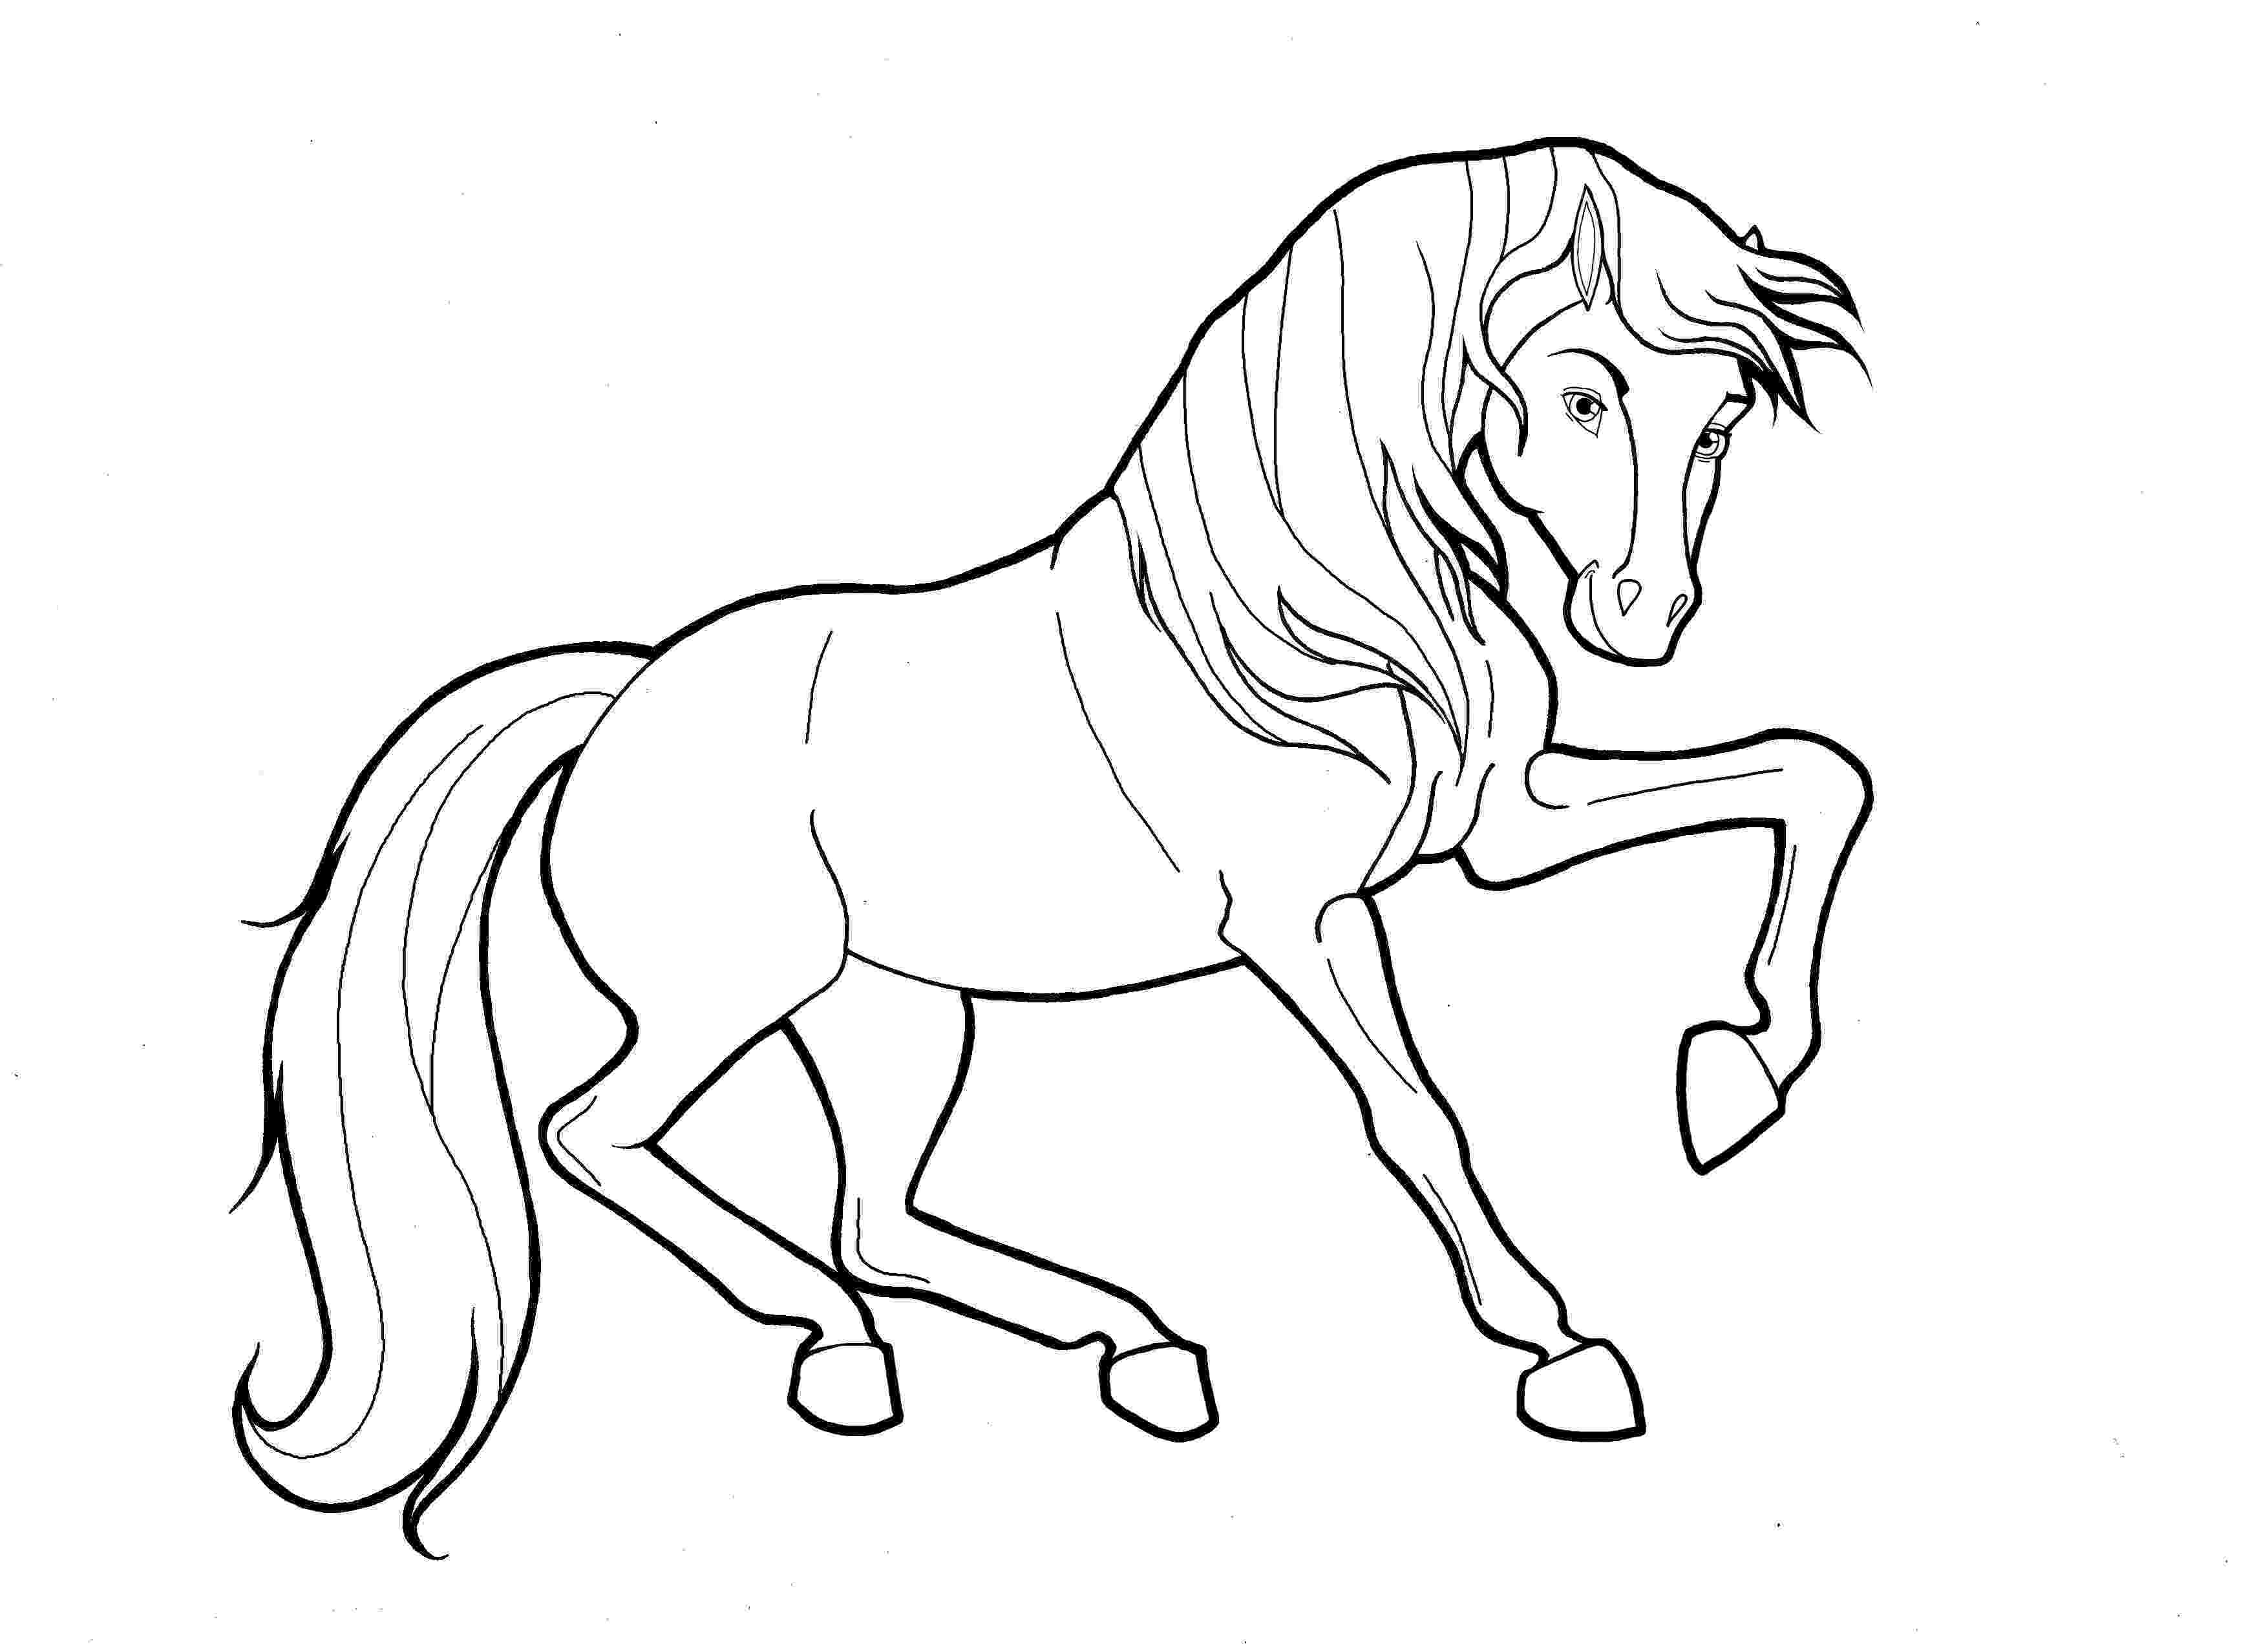 coloring horses coloring pages of horses printable free coloring sheets horses coloring